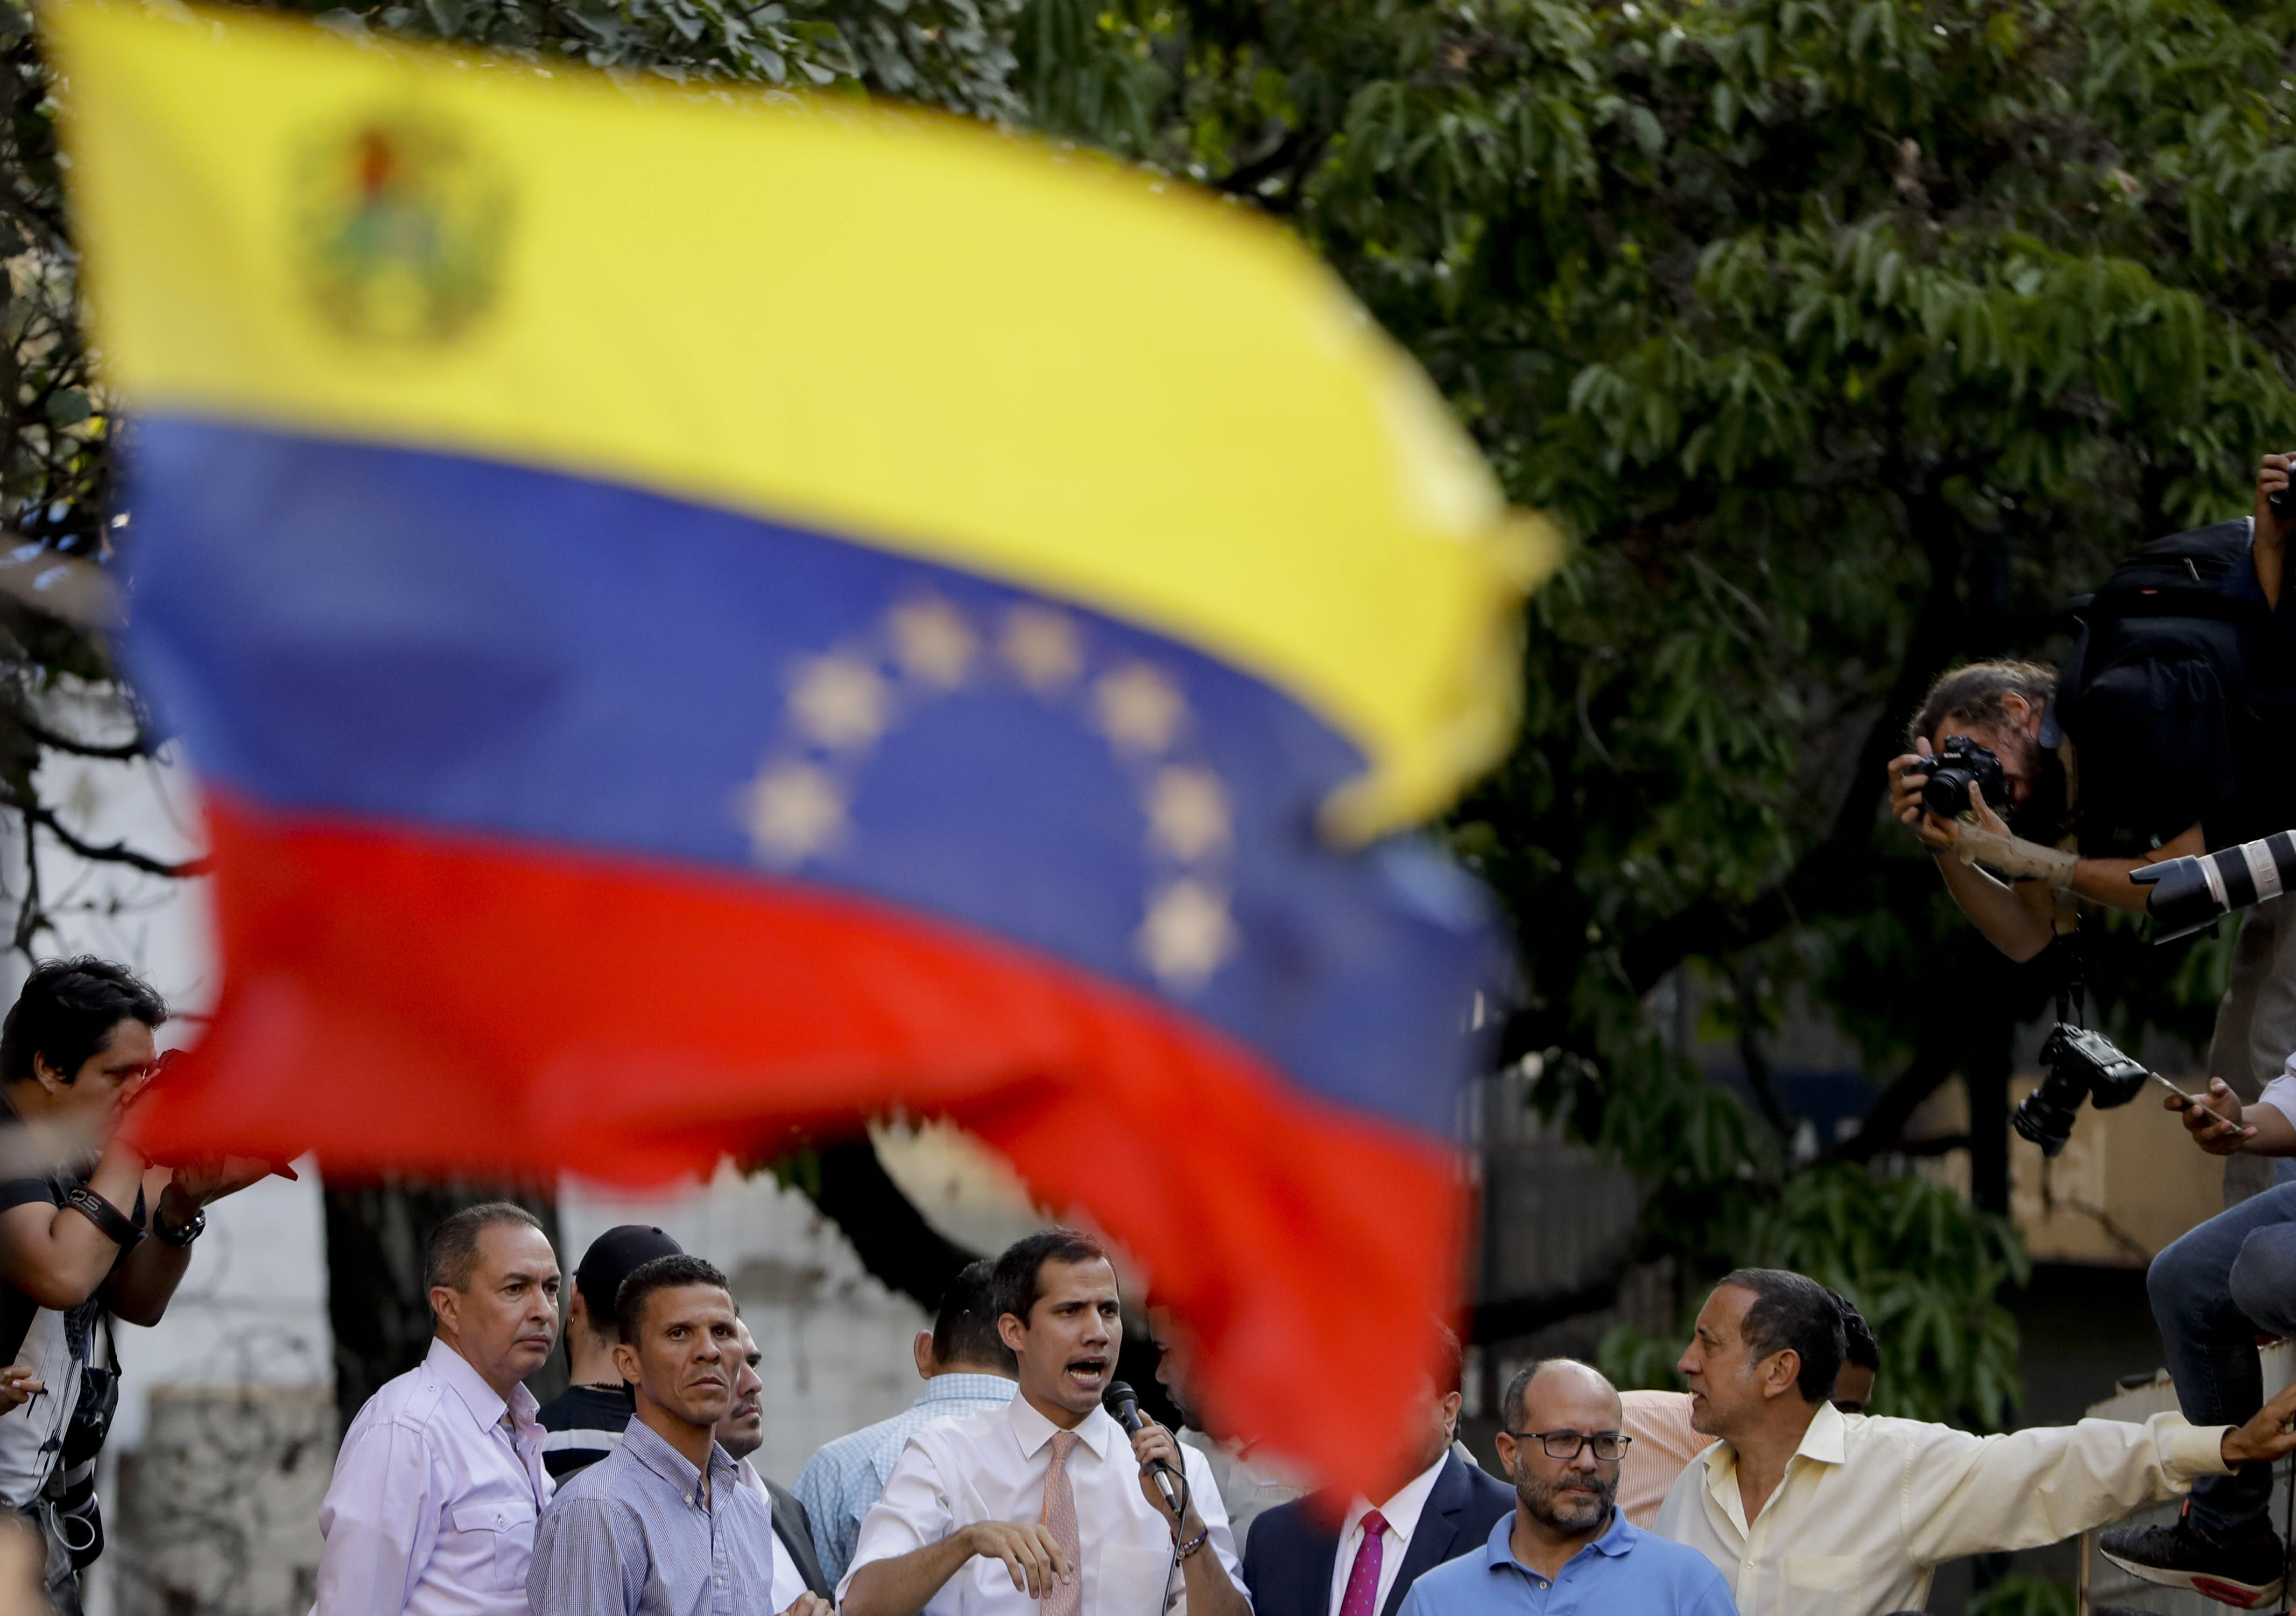 """Venezuela's opposition leader and self-proclaimed interim president Juan Guaido talks during a rally in Caracas, Venezuela, Monday, April 1, 2019. He's backed by more than 50 nations, which consider Nicolas Maduro's presidency illegitimate following what they call sham elections last year. """"We must unite now more than ever,"""" said Guaido earlier in the day. """"We must mount the biggest demonstration so far to reject what's happening."""" (AP Photo/Natacha Pisarenko)"""